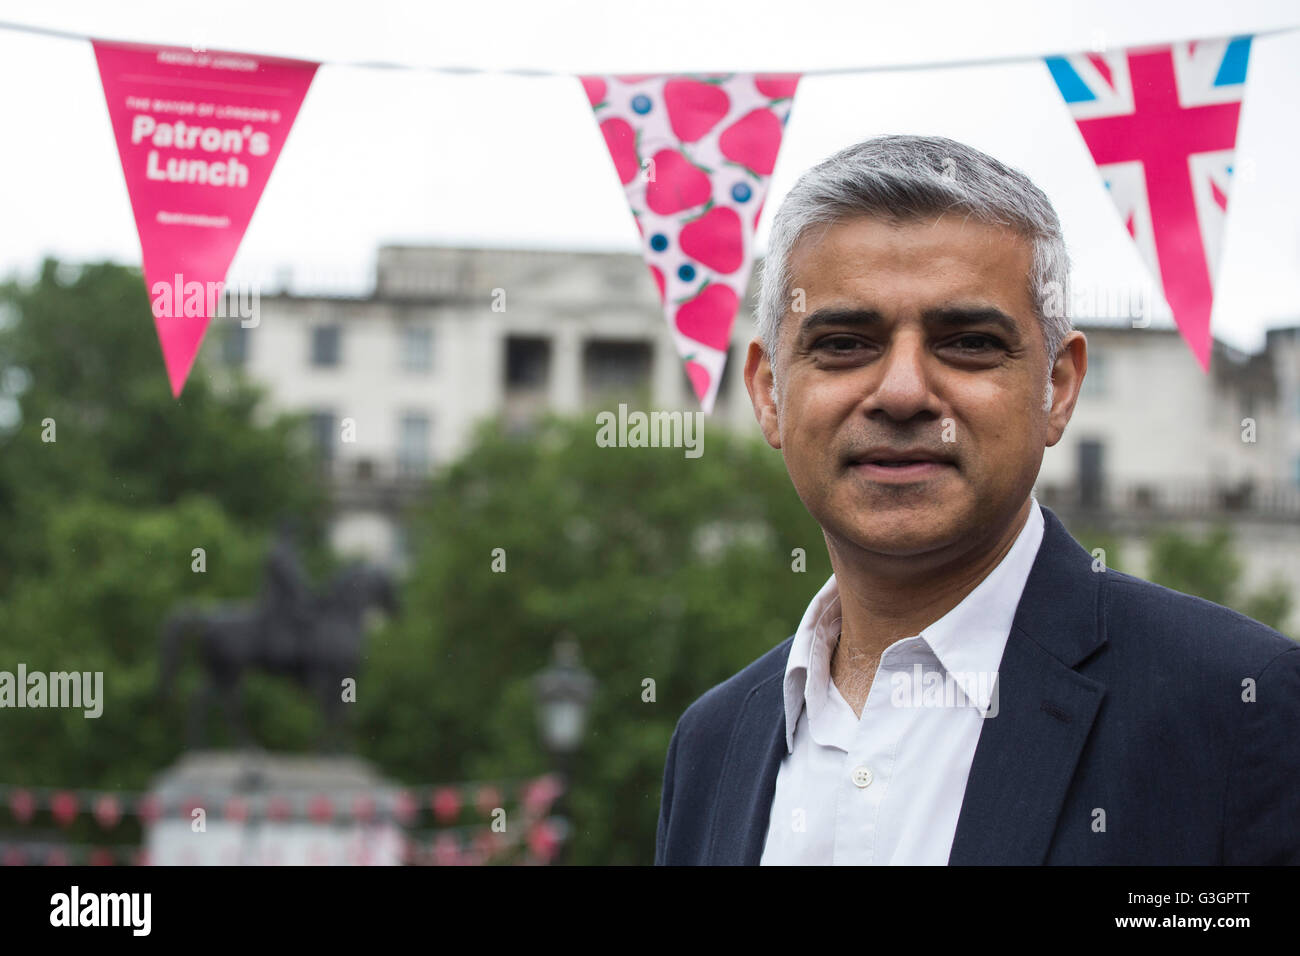 London, UK. 12 June 2016. Sadiq Khan, Mayor of London, British Politician and Member of the Labour Party. Stock Photo